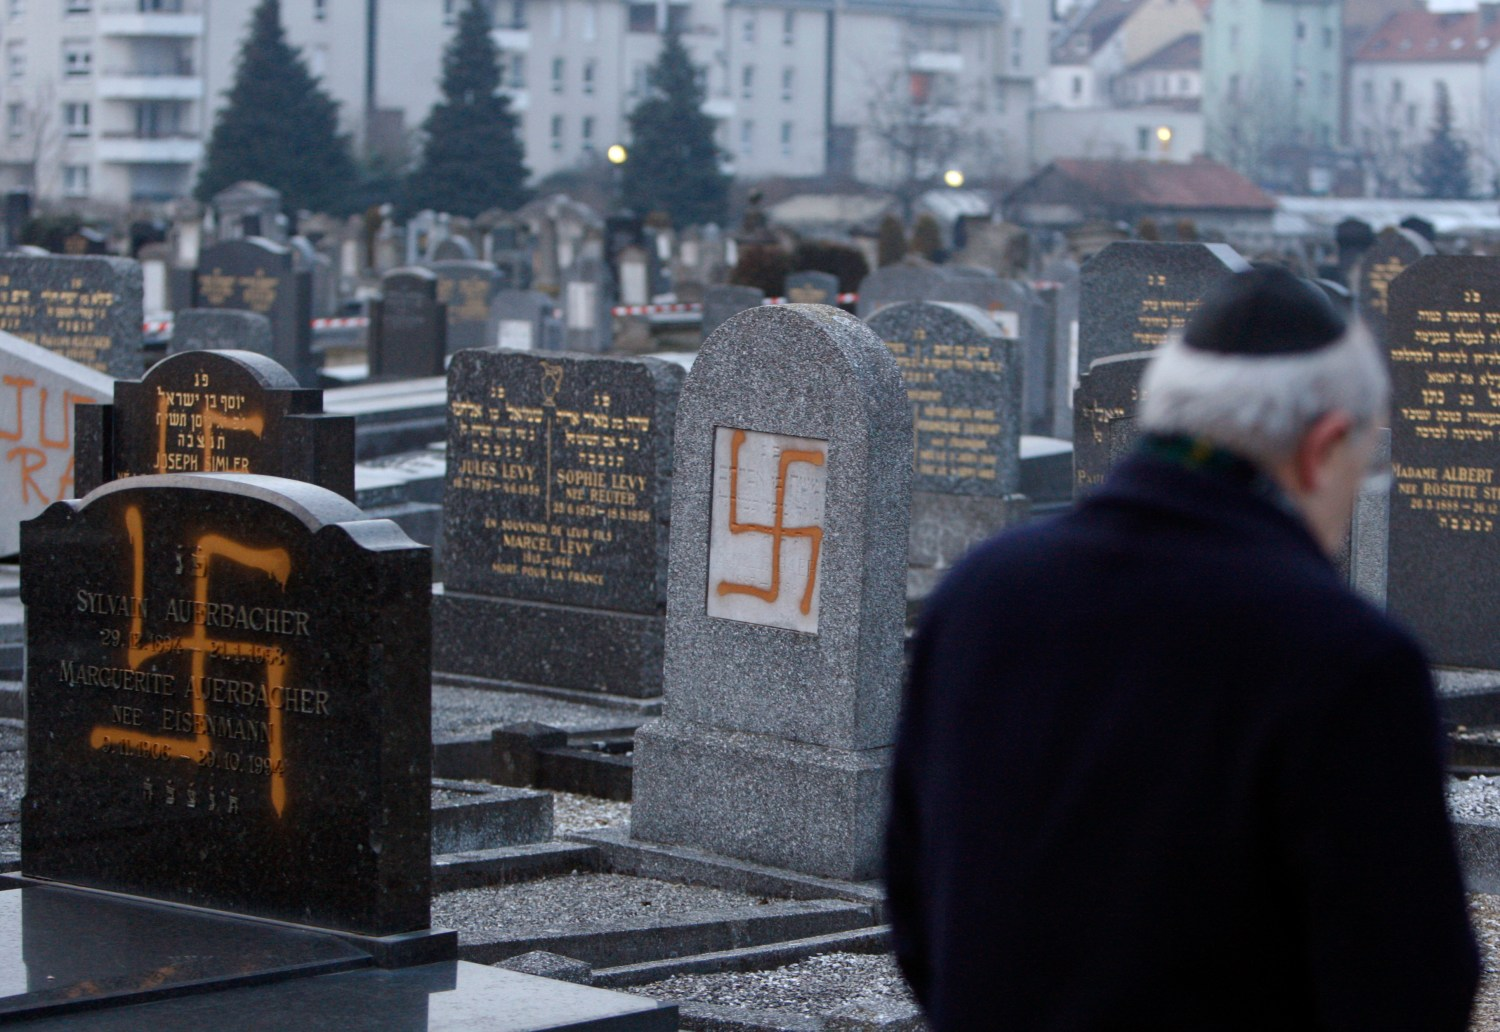 Francis Levy, head of the North Alsacian Jewish community, inspects tombstones desecrated by vandals with Nazi swastikas in the Jewish Cemetery of Cronenbourg near Strasbourg, January 27, 2010. REUTERS/Vincent Kessler (FRANCE - Tags: RELIGION CRIME LAW) - RTR29JAP